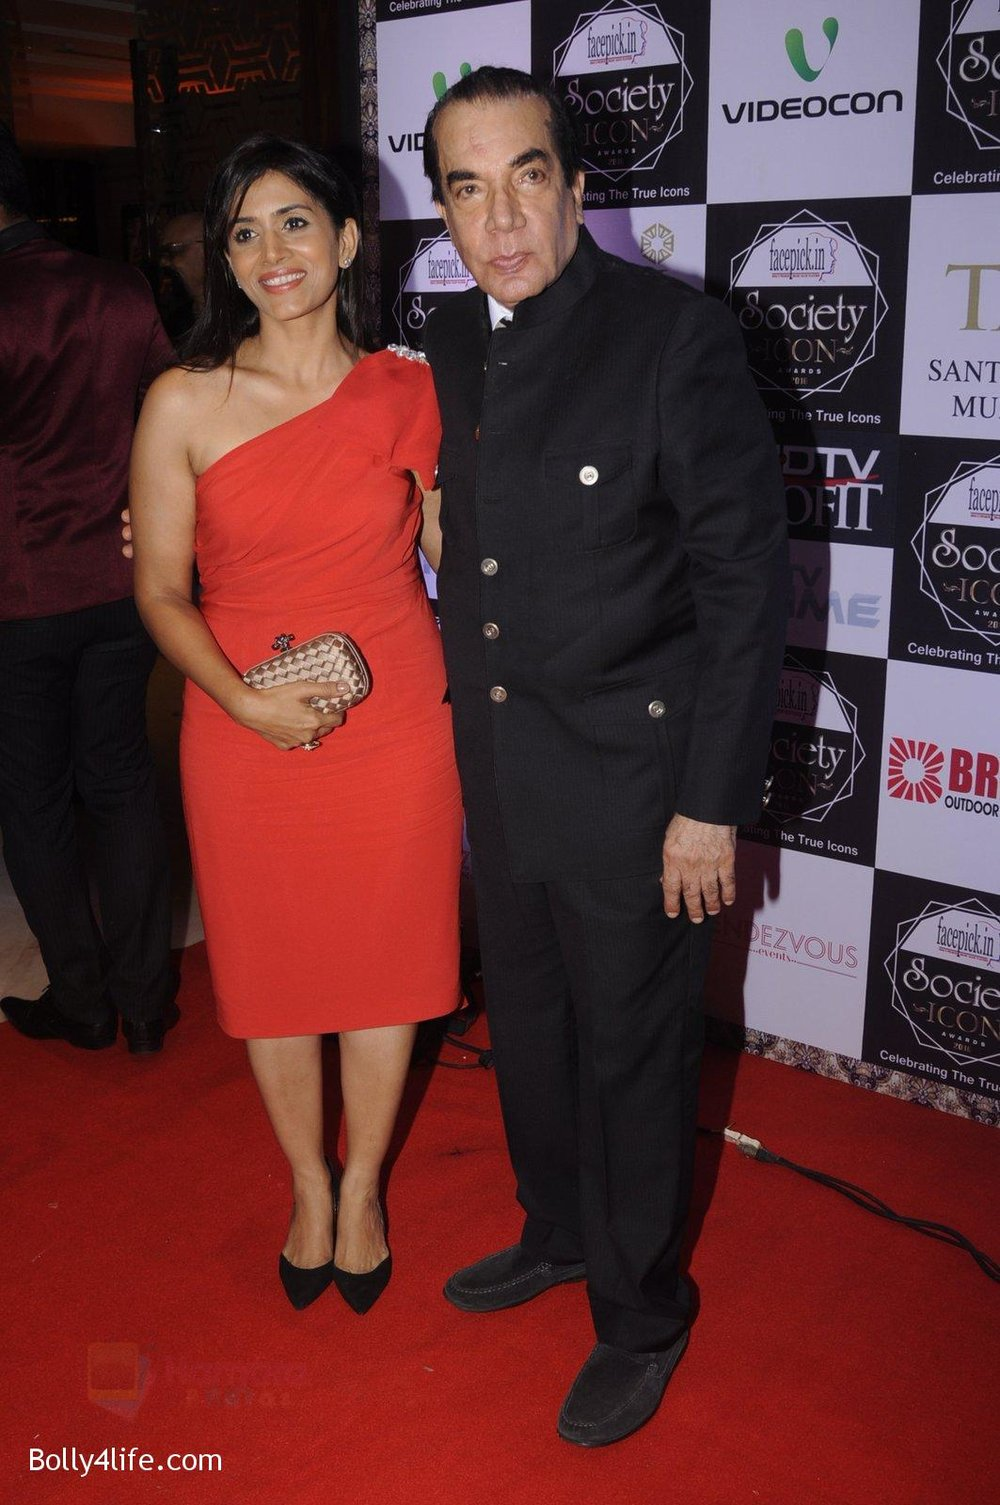 Sonali-Kulkarni-at-Society-Icon-Awards-on-2nd-Oct-2016-27.jpg